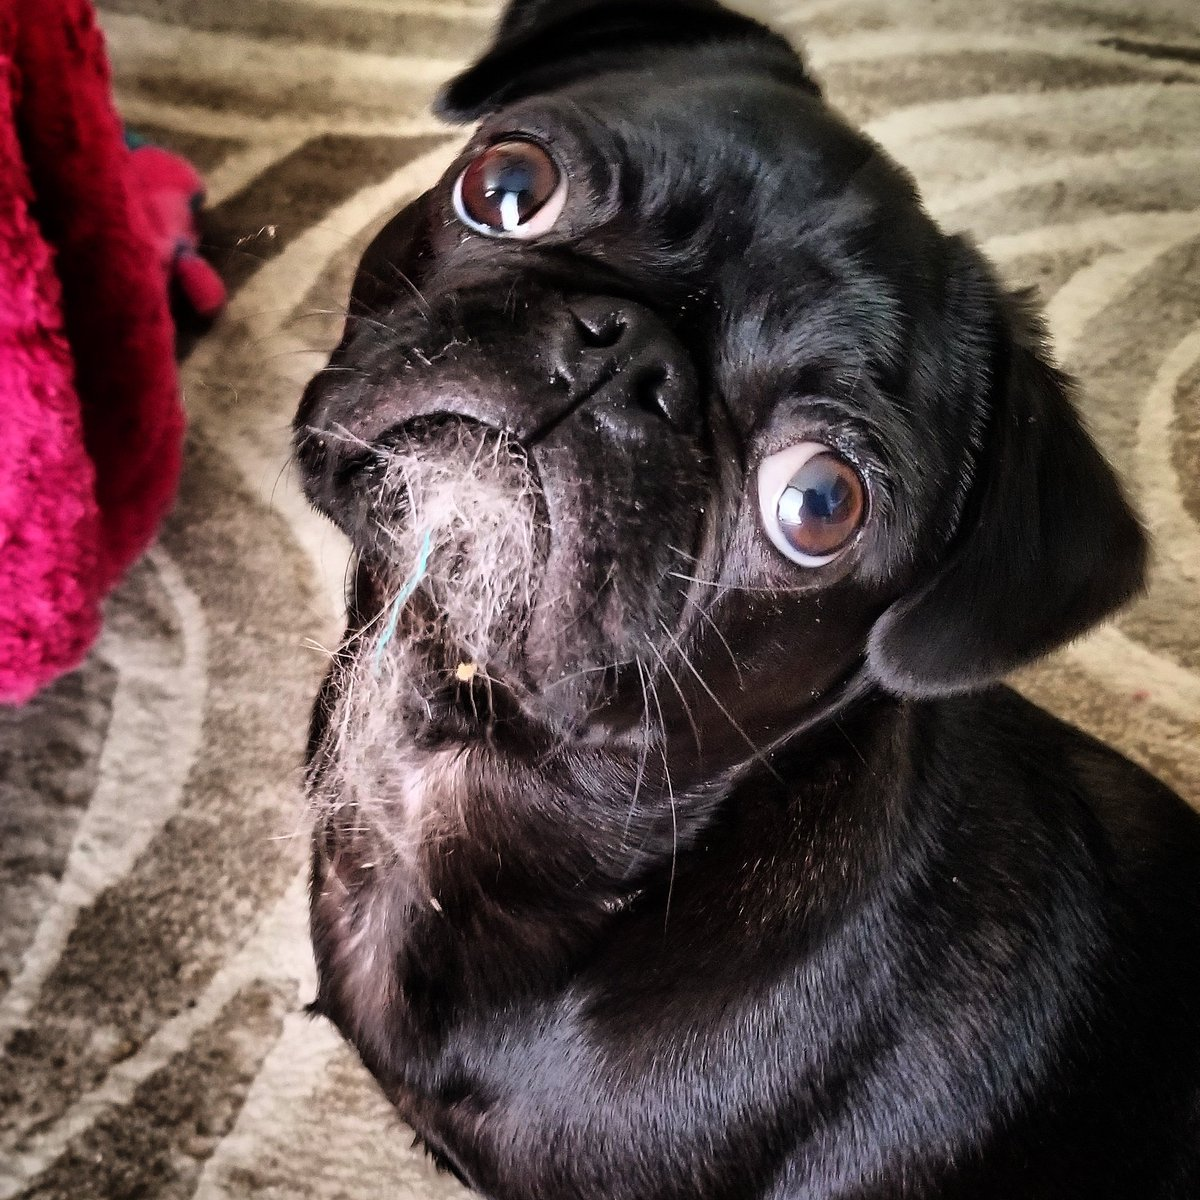 What? Me not chewing nothing.  #pug #pugs #dogsoftwitter #dog #dogs <br>http://pic.twitter.com/uJsU629DuJ